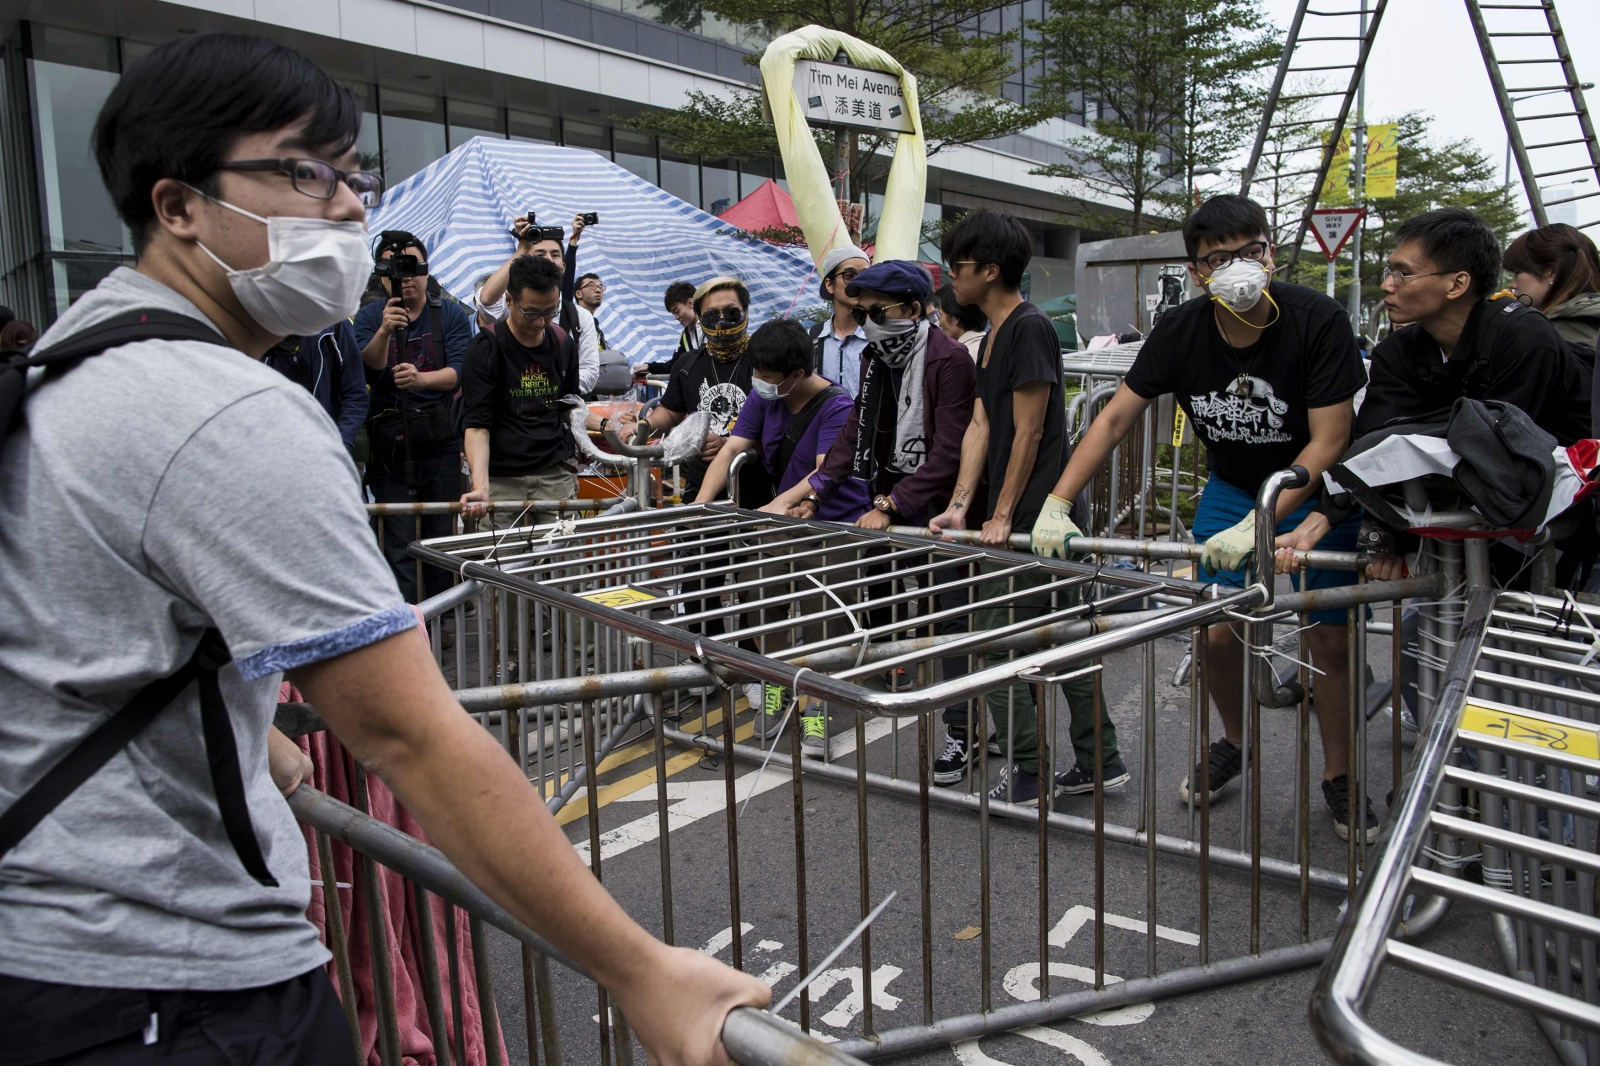 Hong Kong Police Launch Operation to Clear Student Protesters